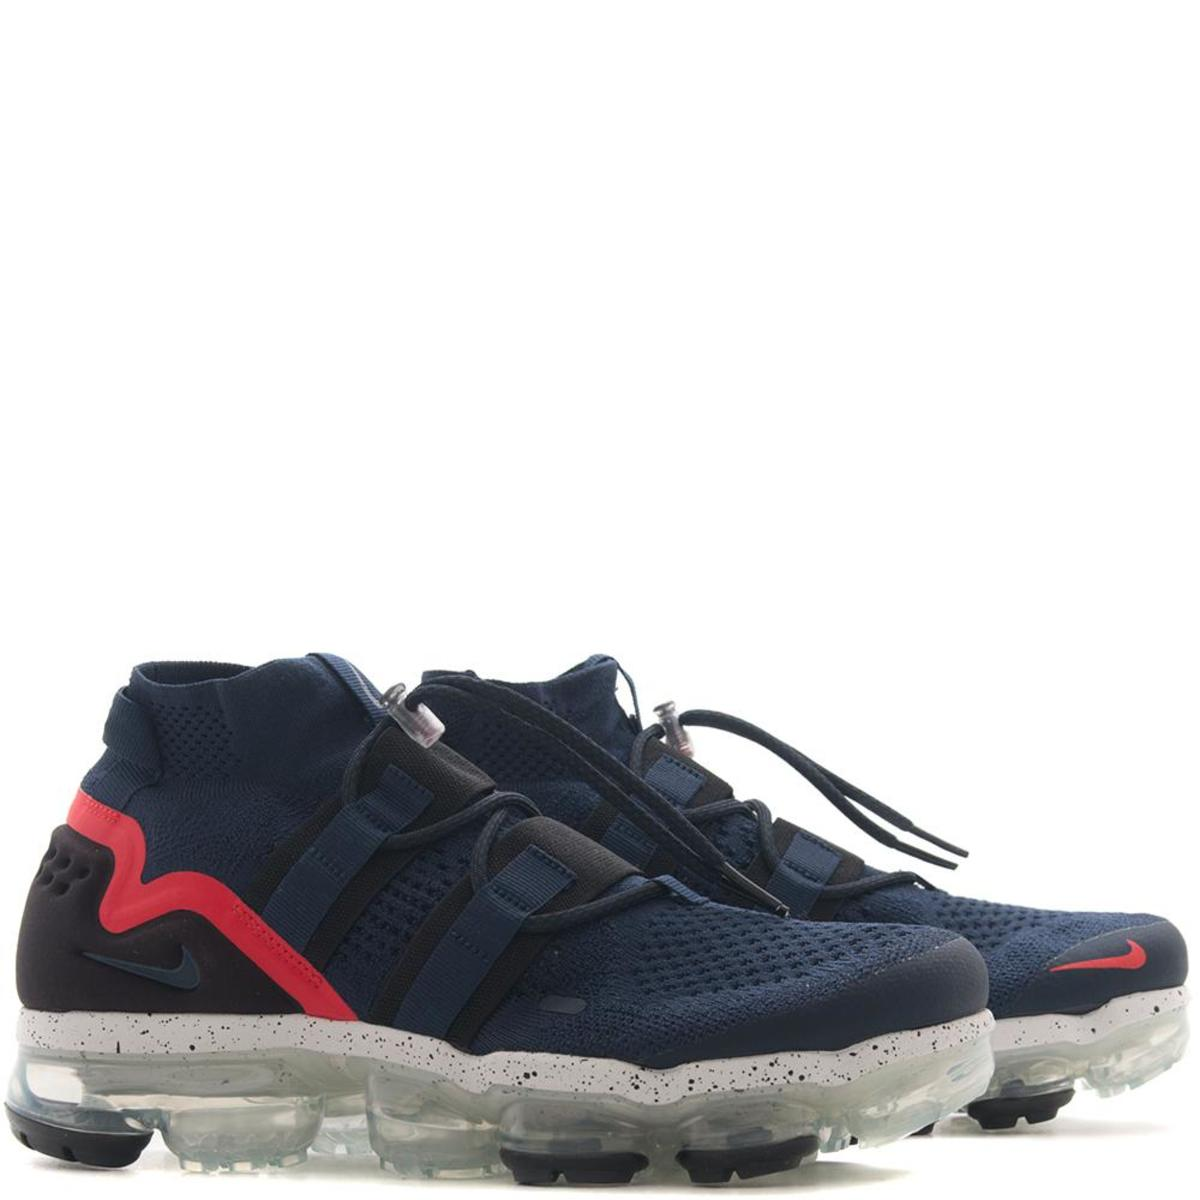 31a7b3eaed03 NIKE AIR VAPORMAX FLYKNIT UTILITY - COLLEGE NAVY